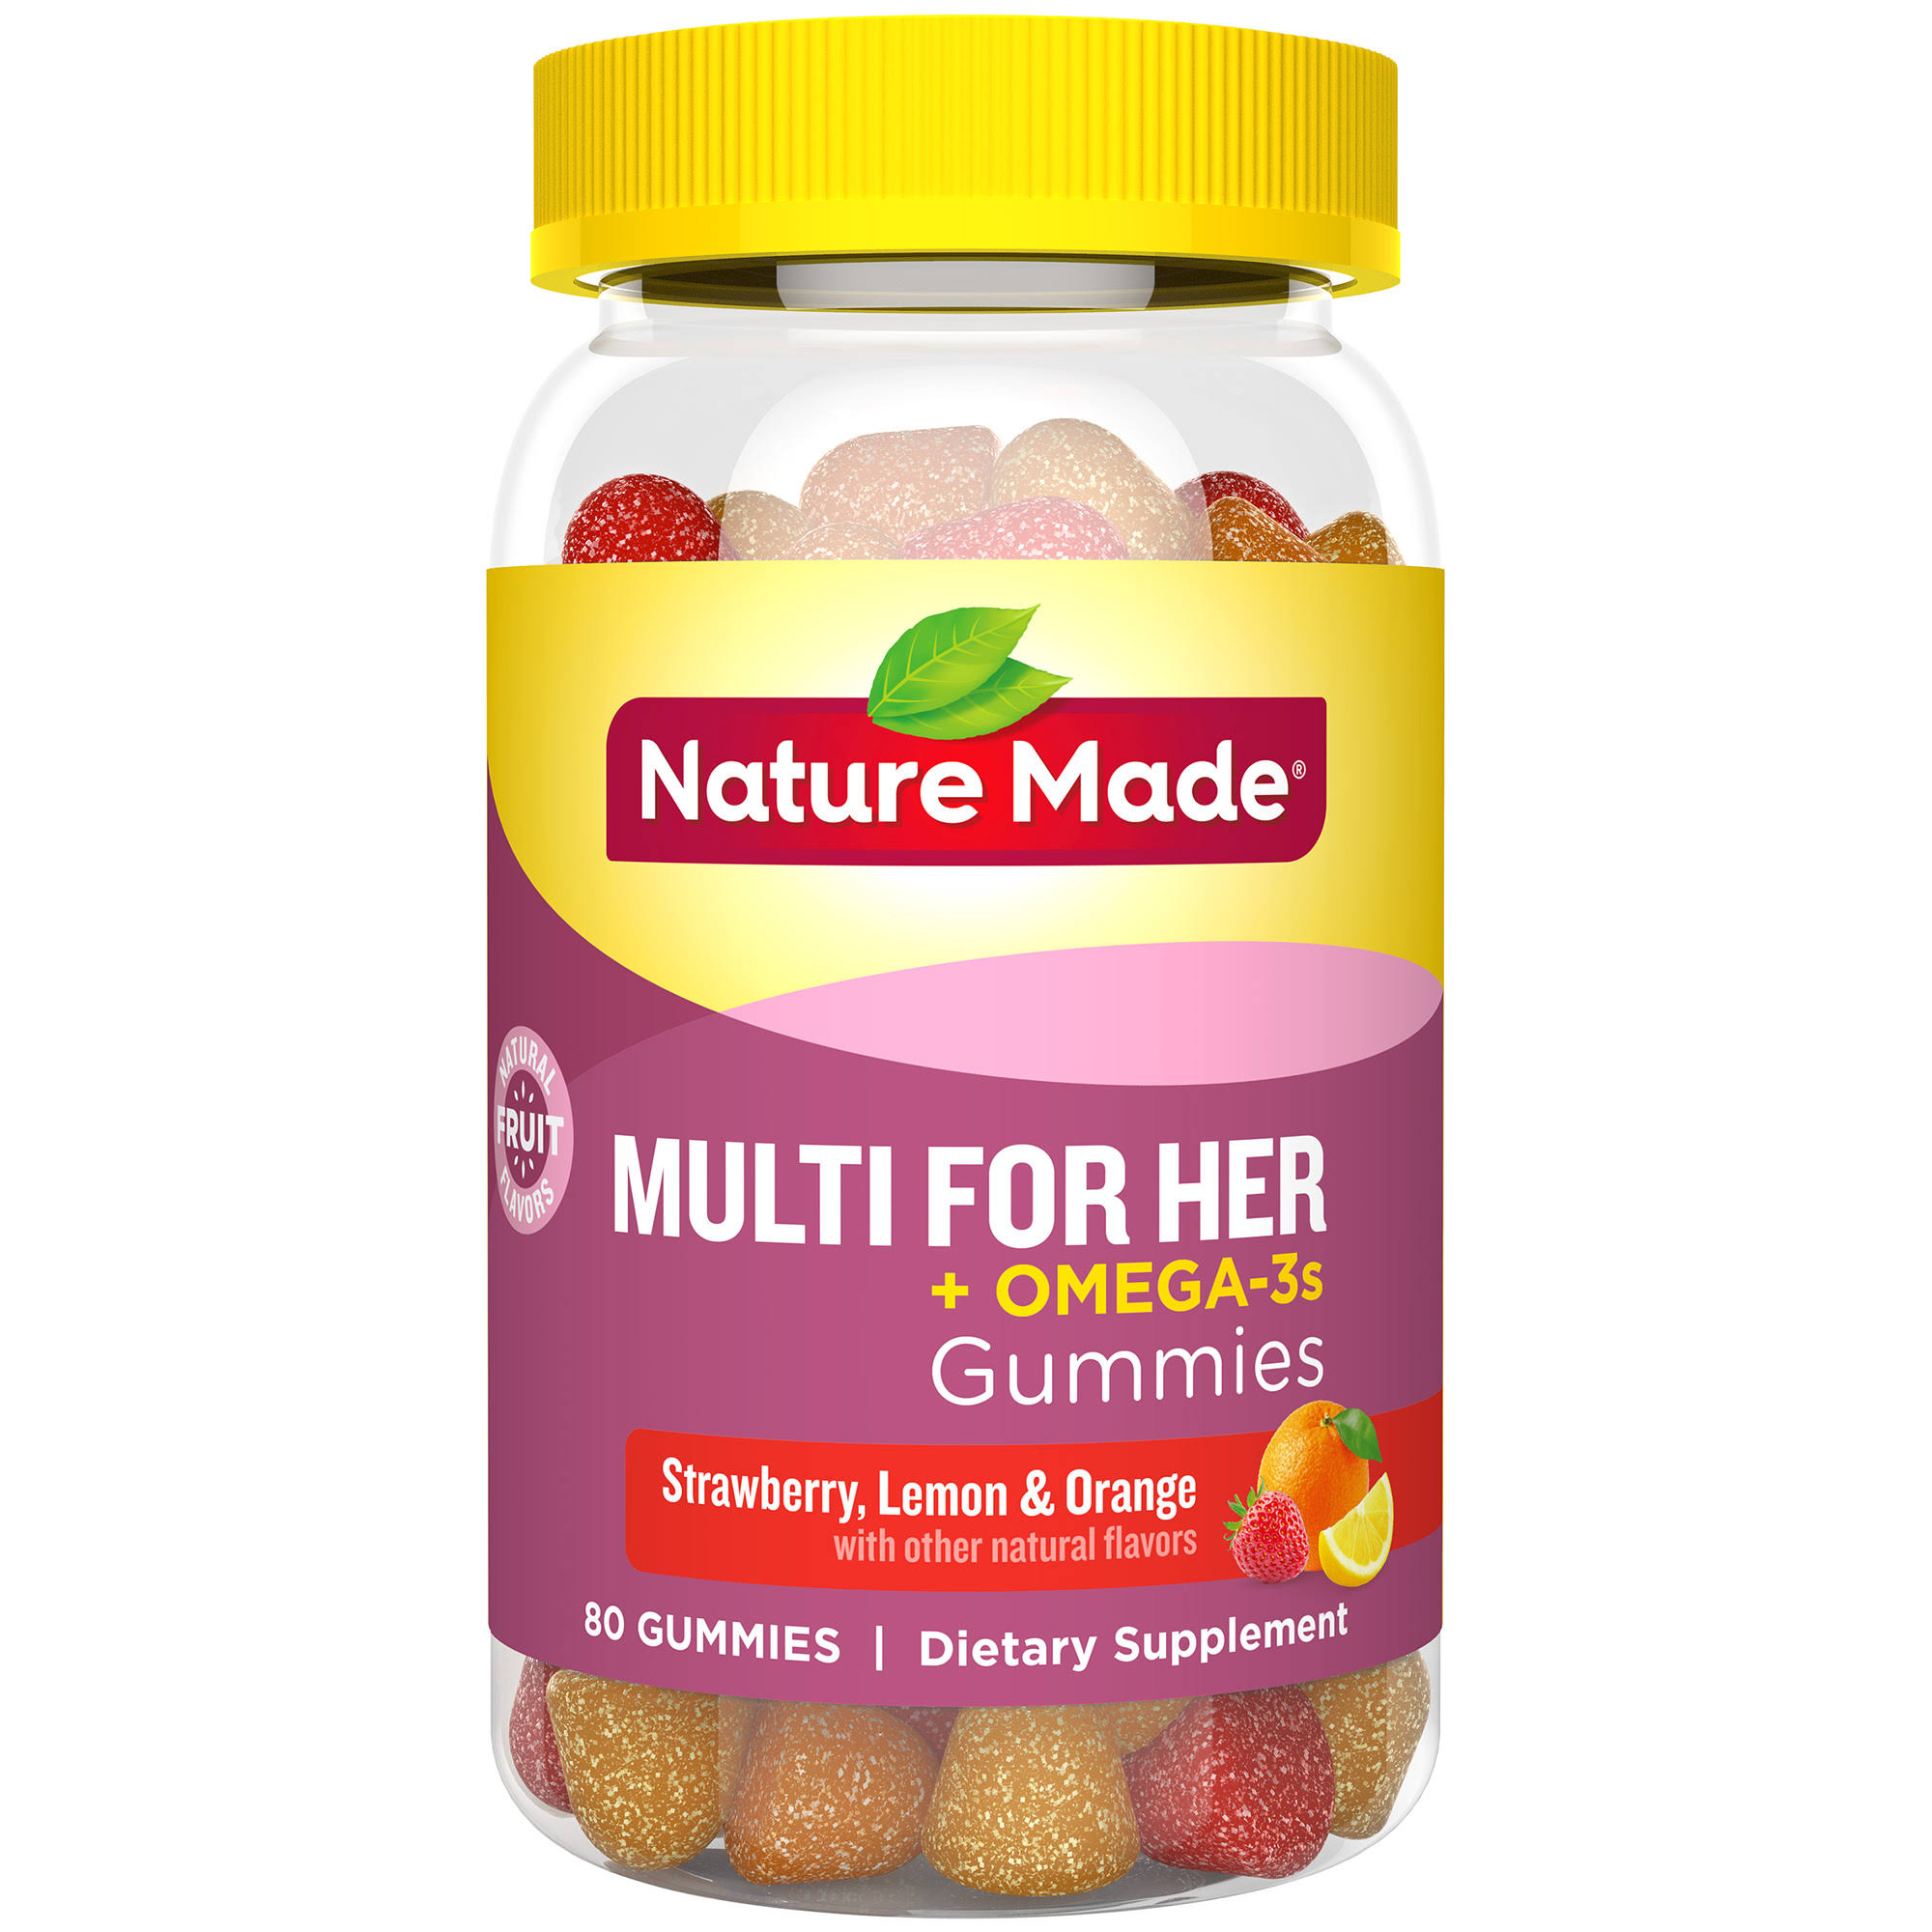 Nature Made Multi For Her Plus Omega-3 Adult Gummies Dietary Supplement - 80ct